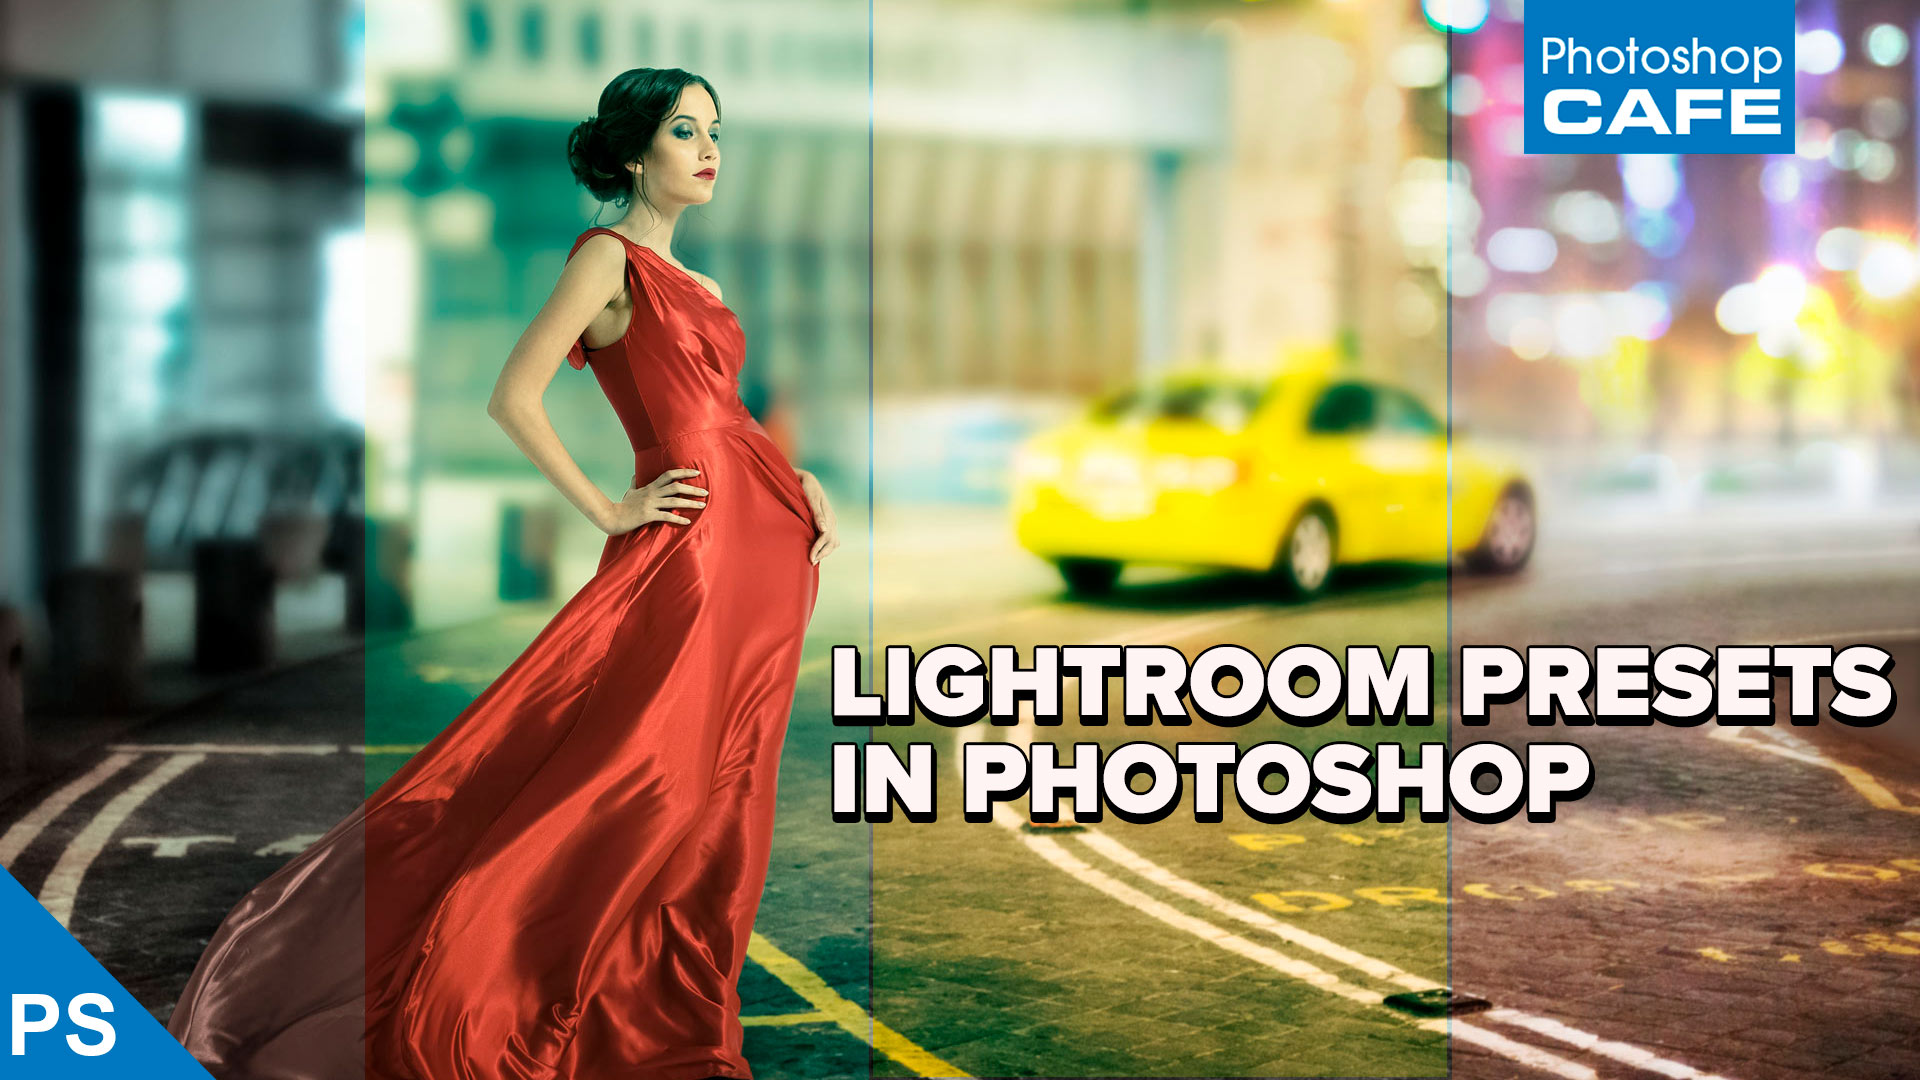 How to use lightroom presets in photoshop photoshopcafe